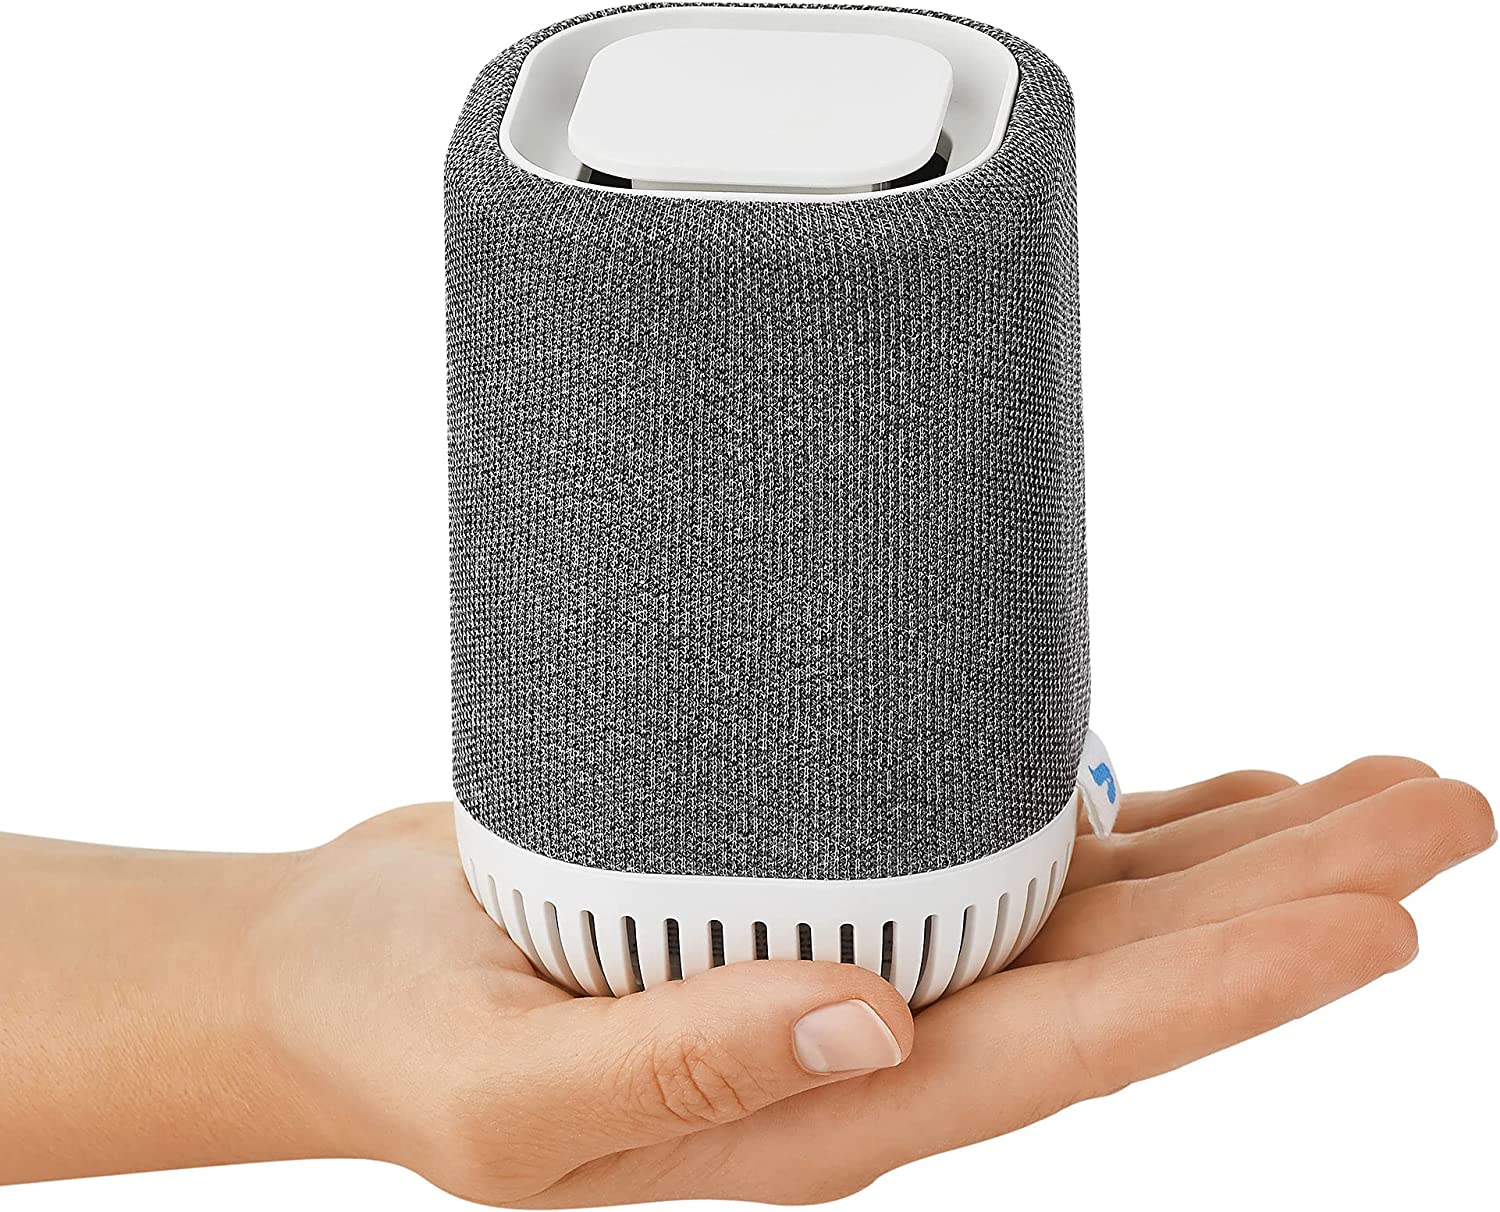 Aura Max 64% OFF Air Mini Purifier Wireless Ranking TOP11 Rechargeable Portable